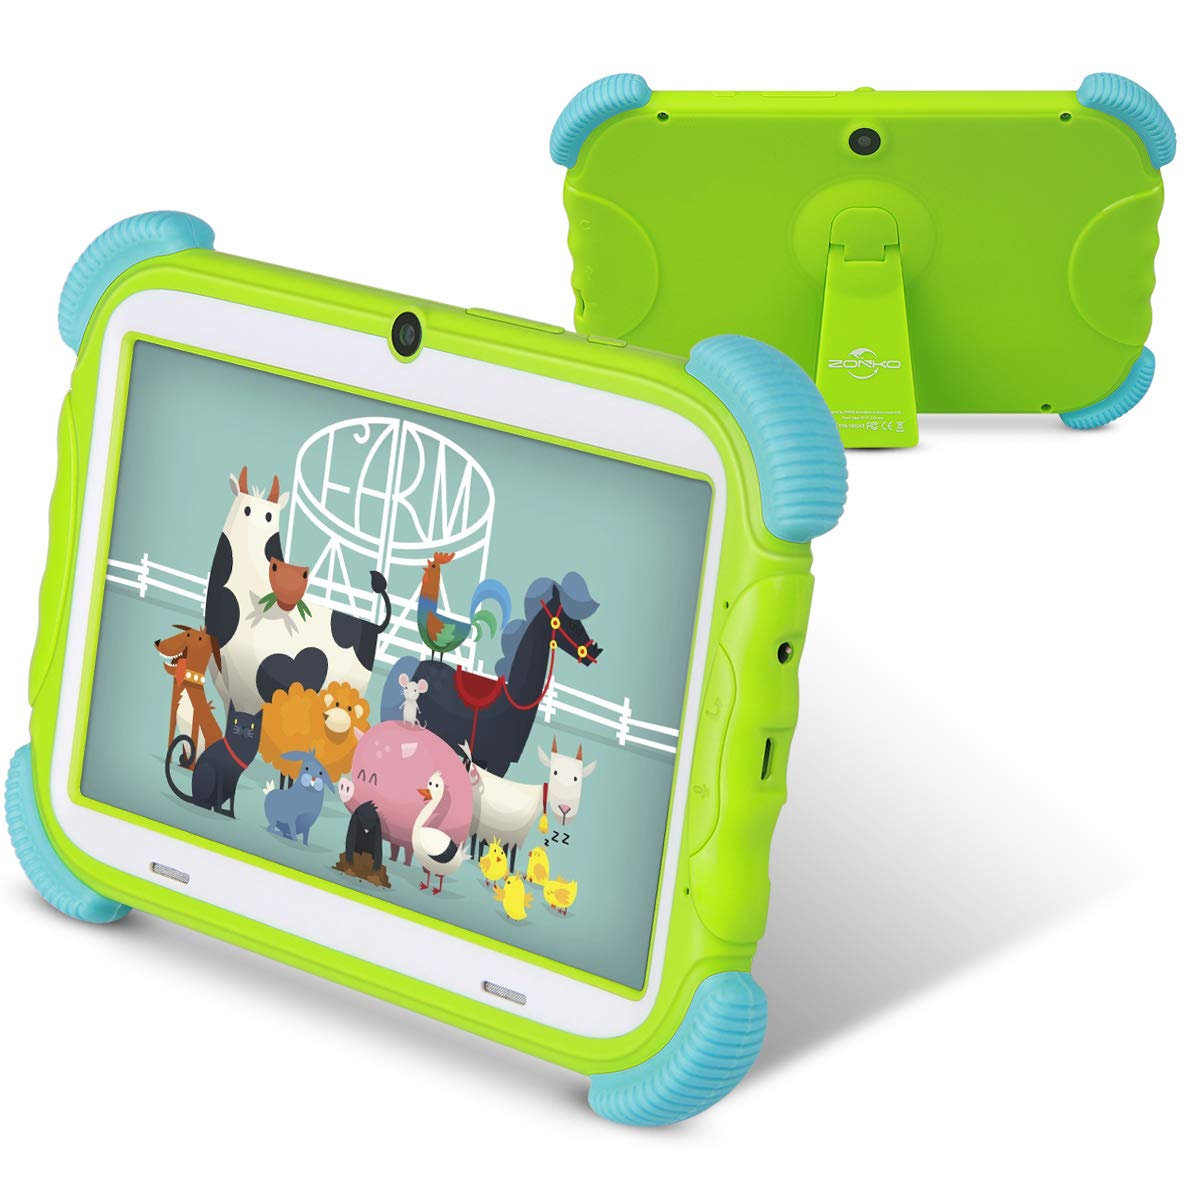 Kids Tablet, 7 inch Android 8.1 Tablet for Kids, 16GB with WiFi, Preinstalled Educational APP Quad-Core Processor, IPS HD Display, Bluetooth, Green